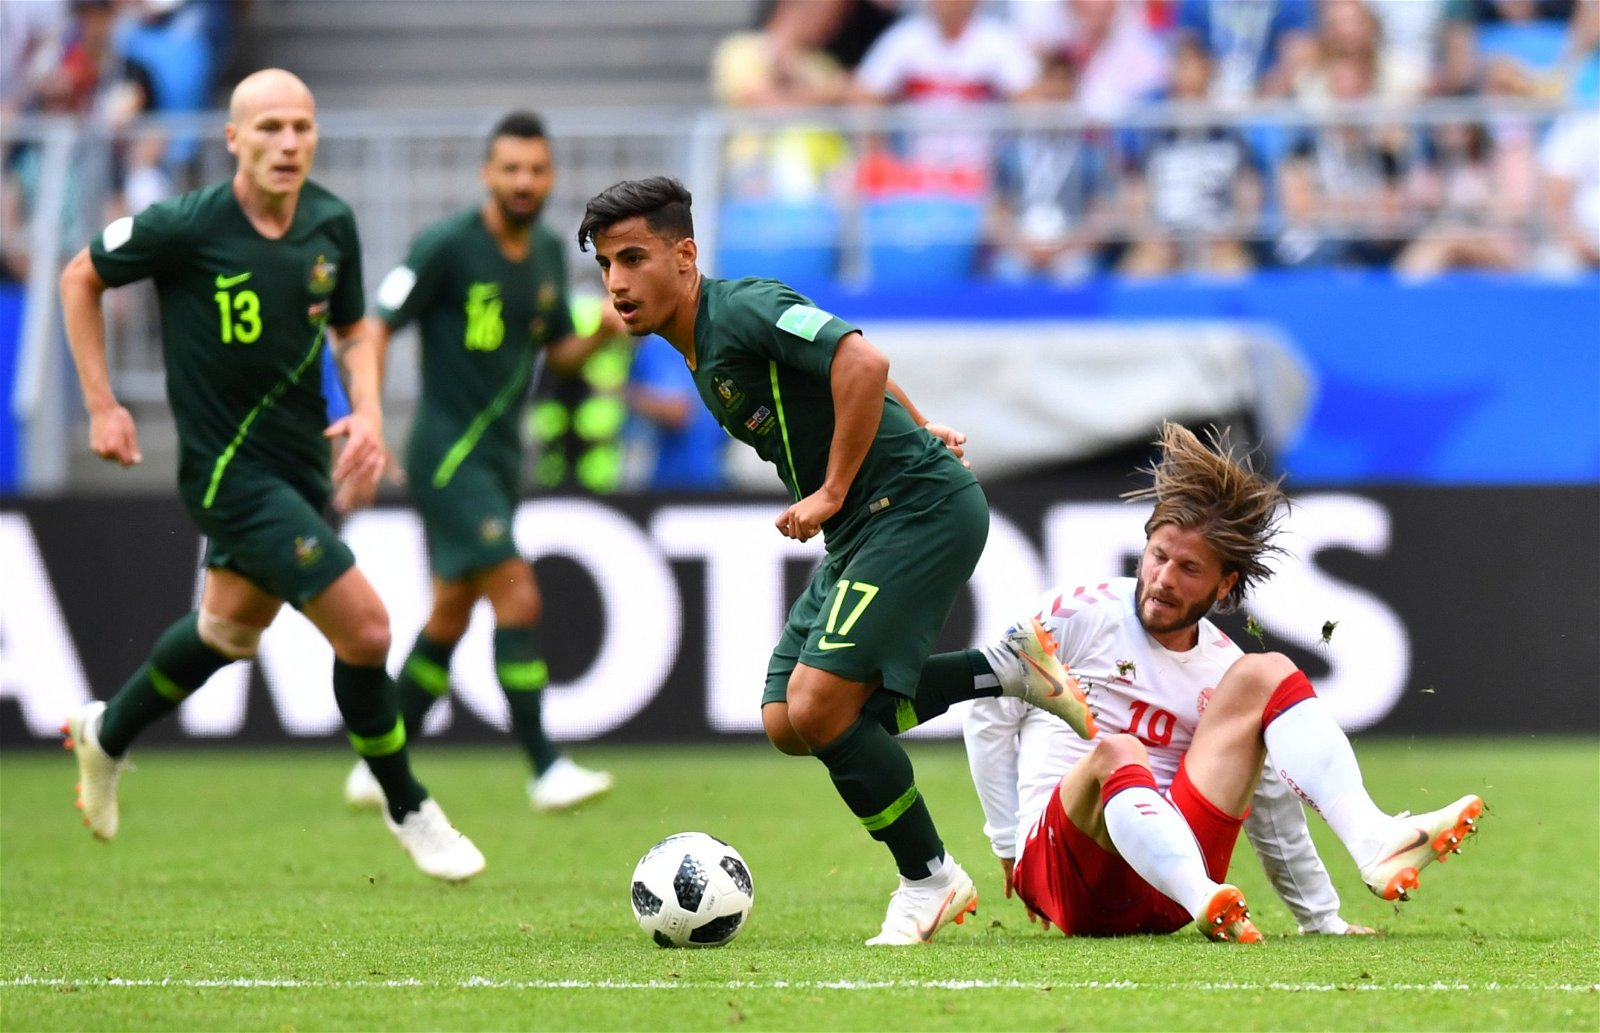 Daniel Arzani in action for Australia